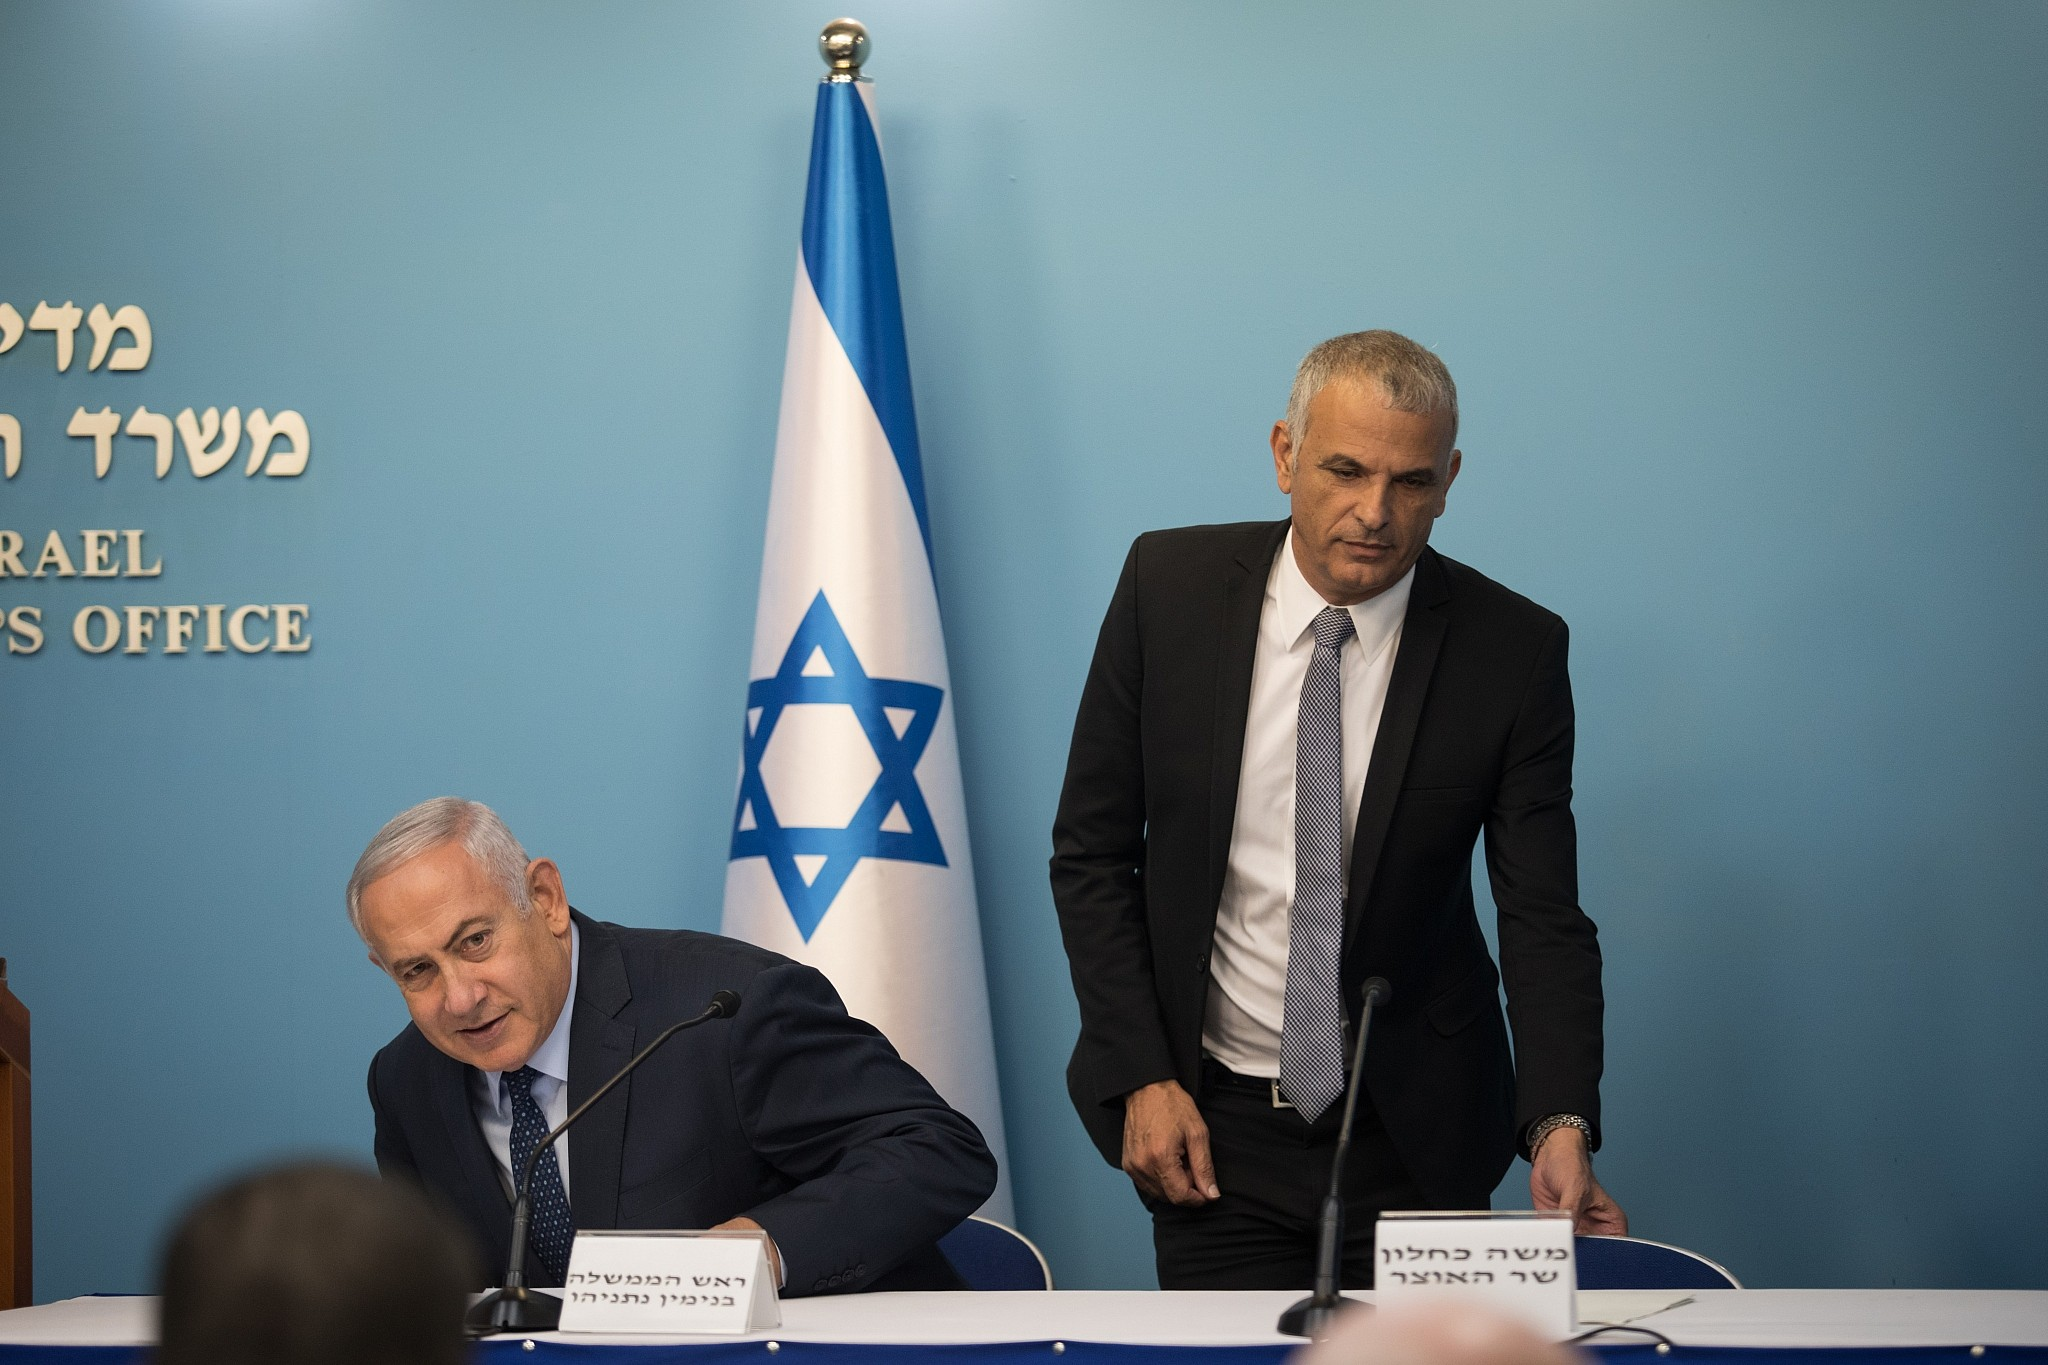 Israel coalition likely to fall as MKs veto Bennett appointment